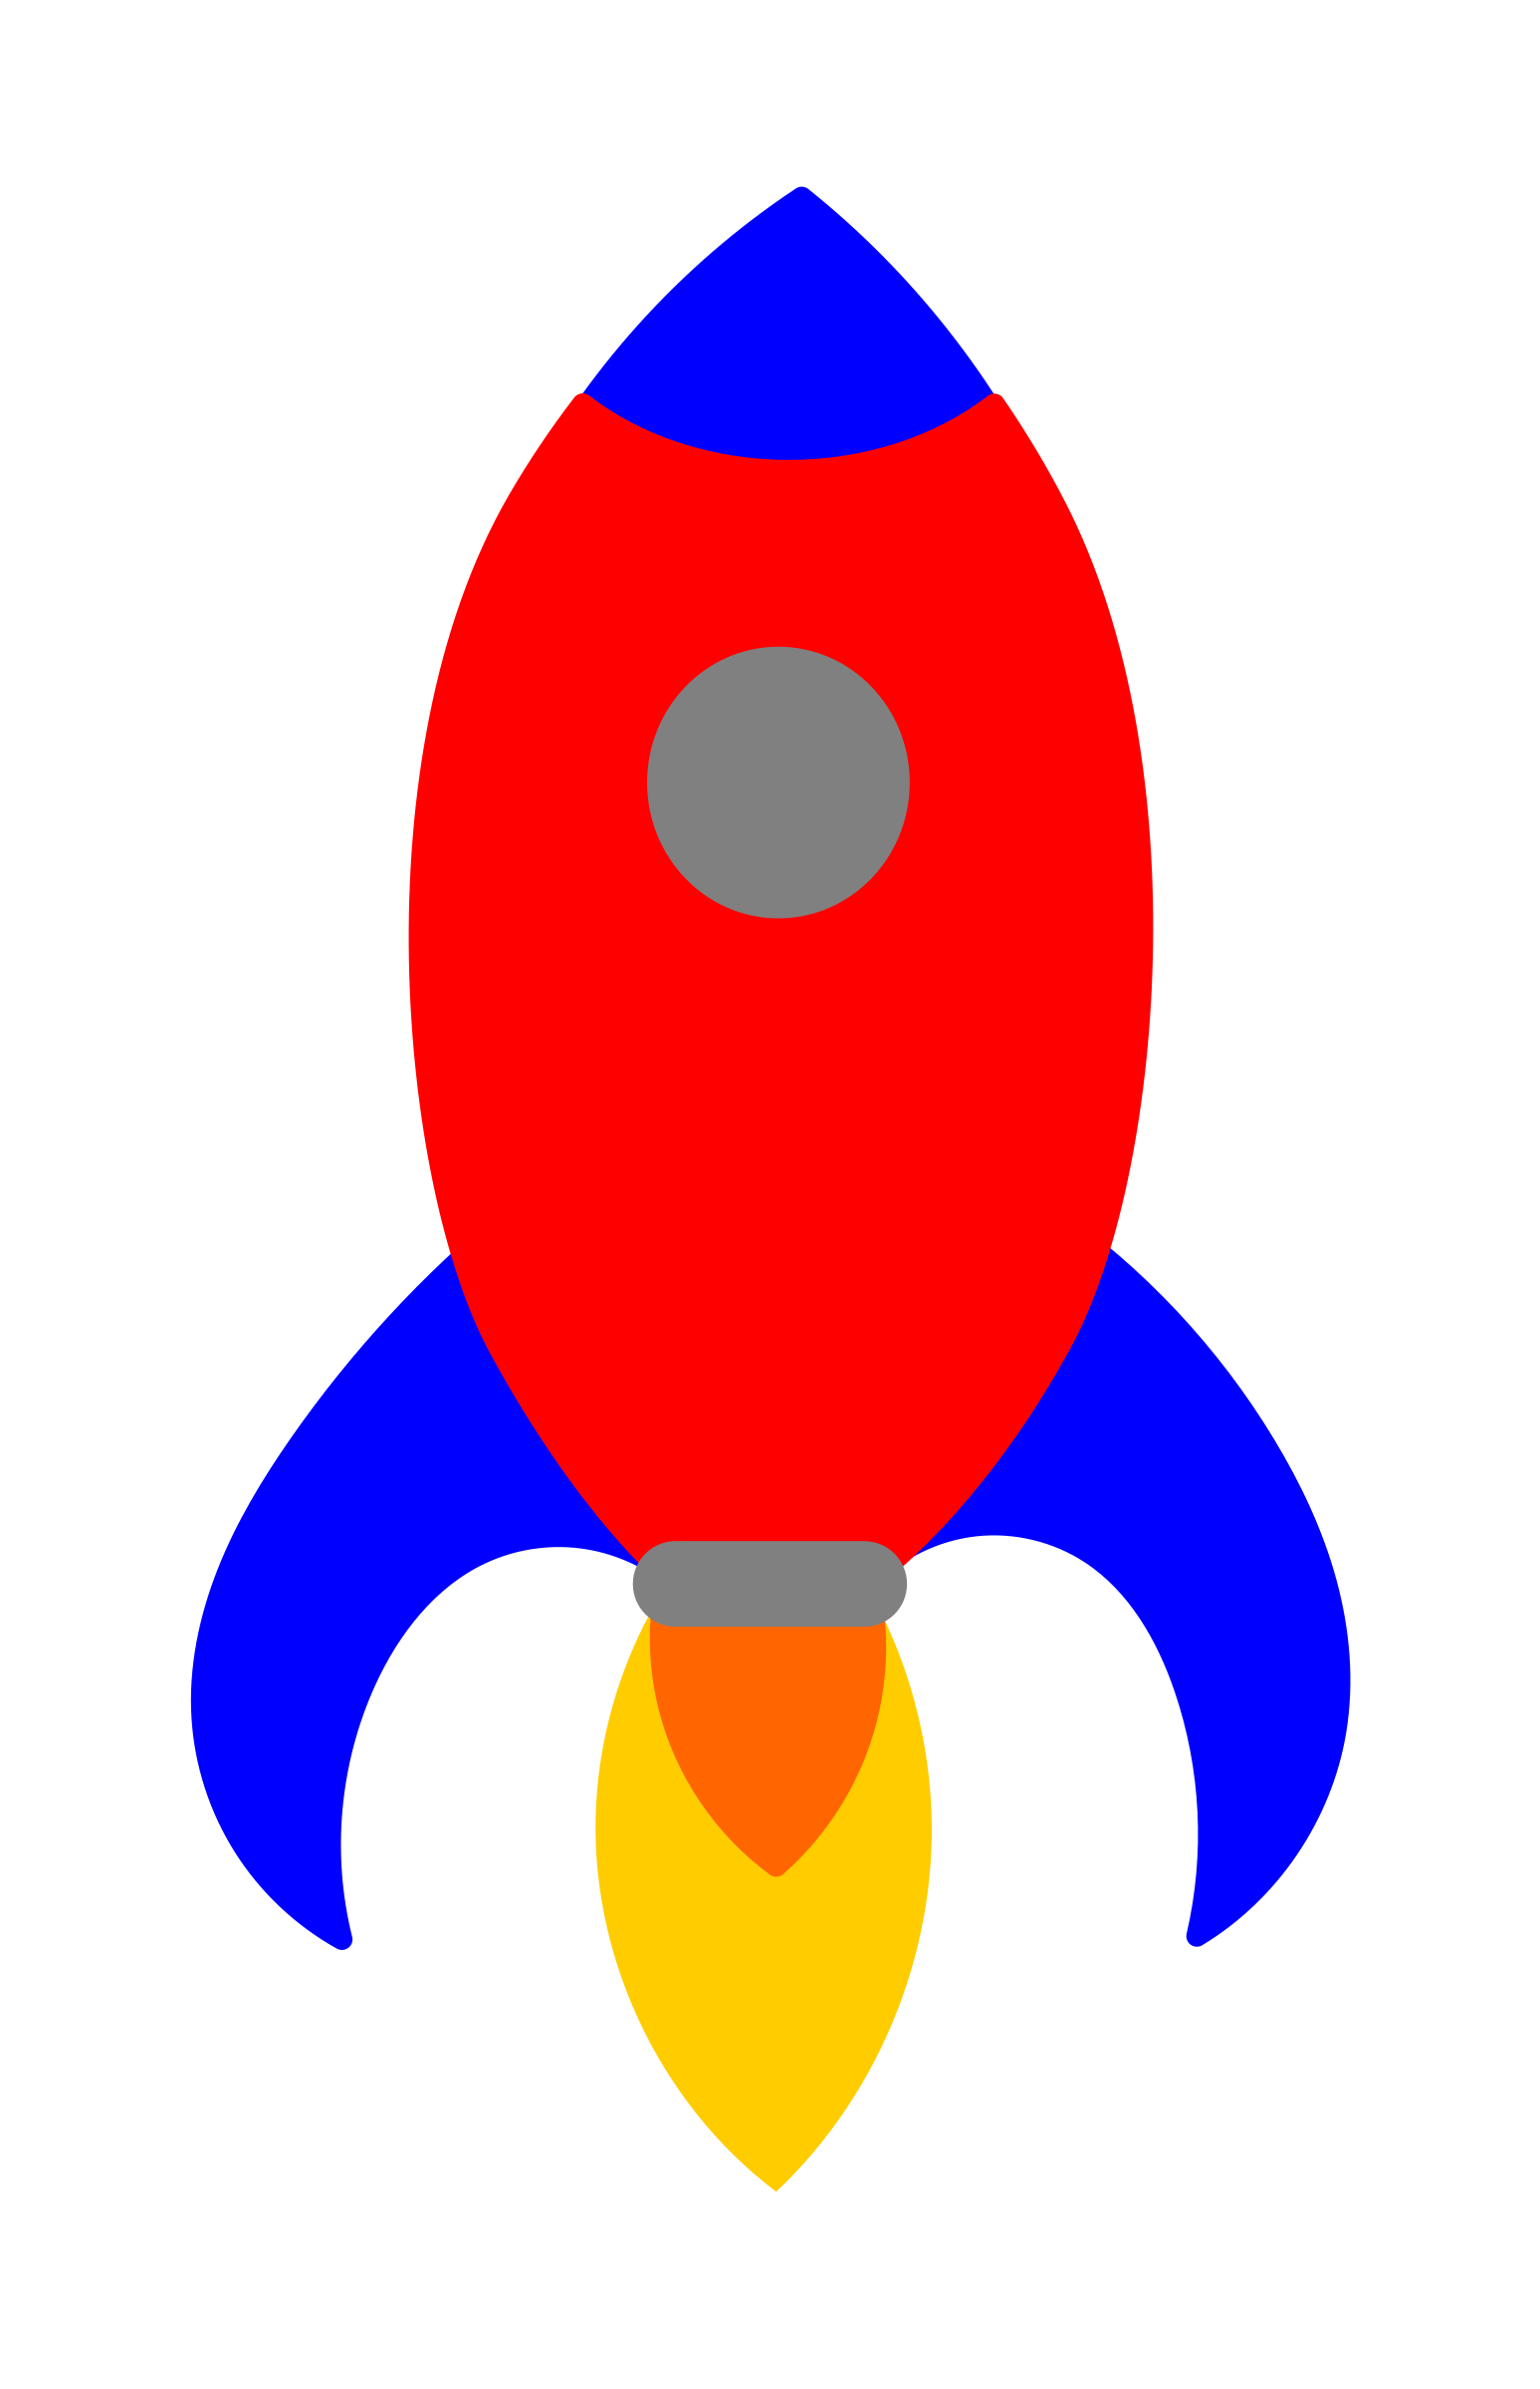 Rocketship clipart rocket exhaust. Primary icons png free